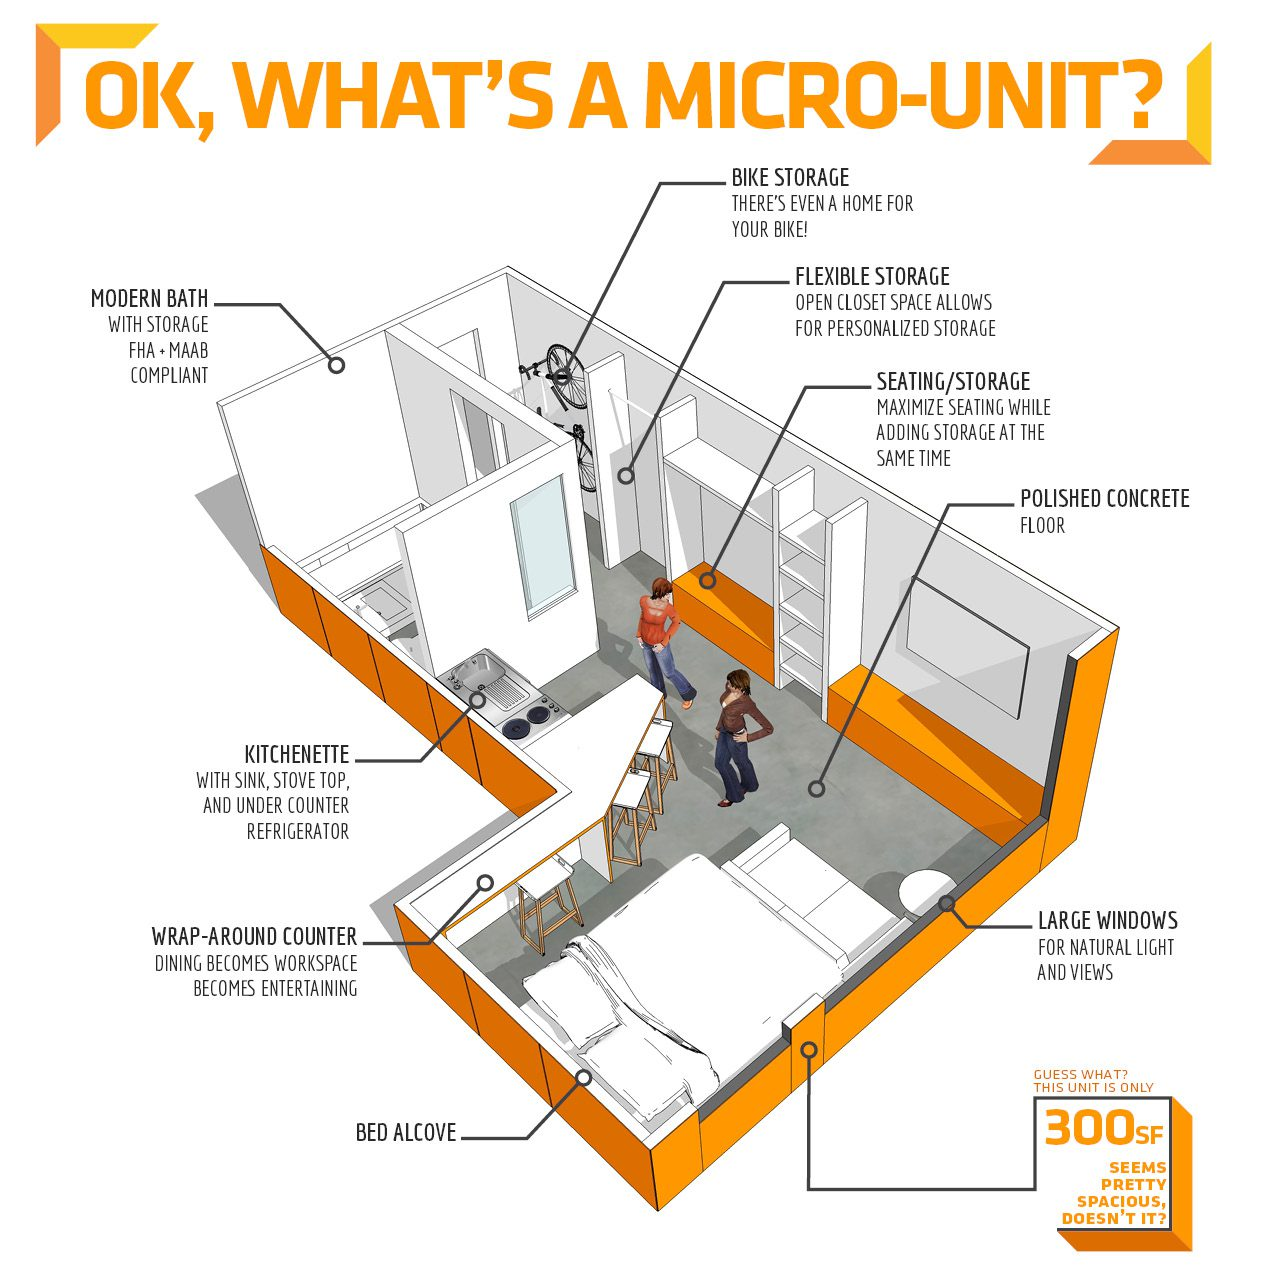 Accessible Affordable Micro Housing An Oxymoron Kma Llc